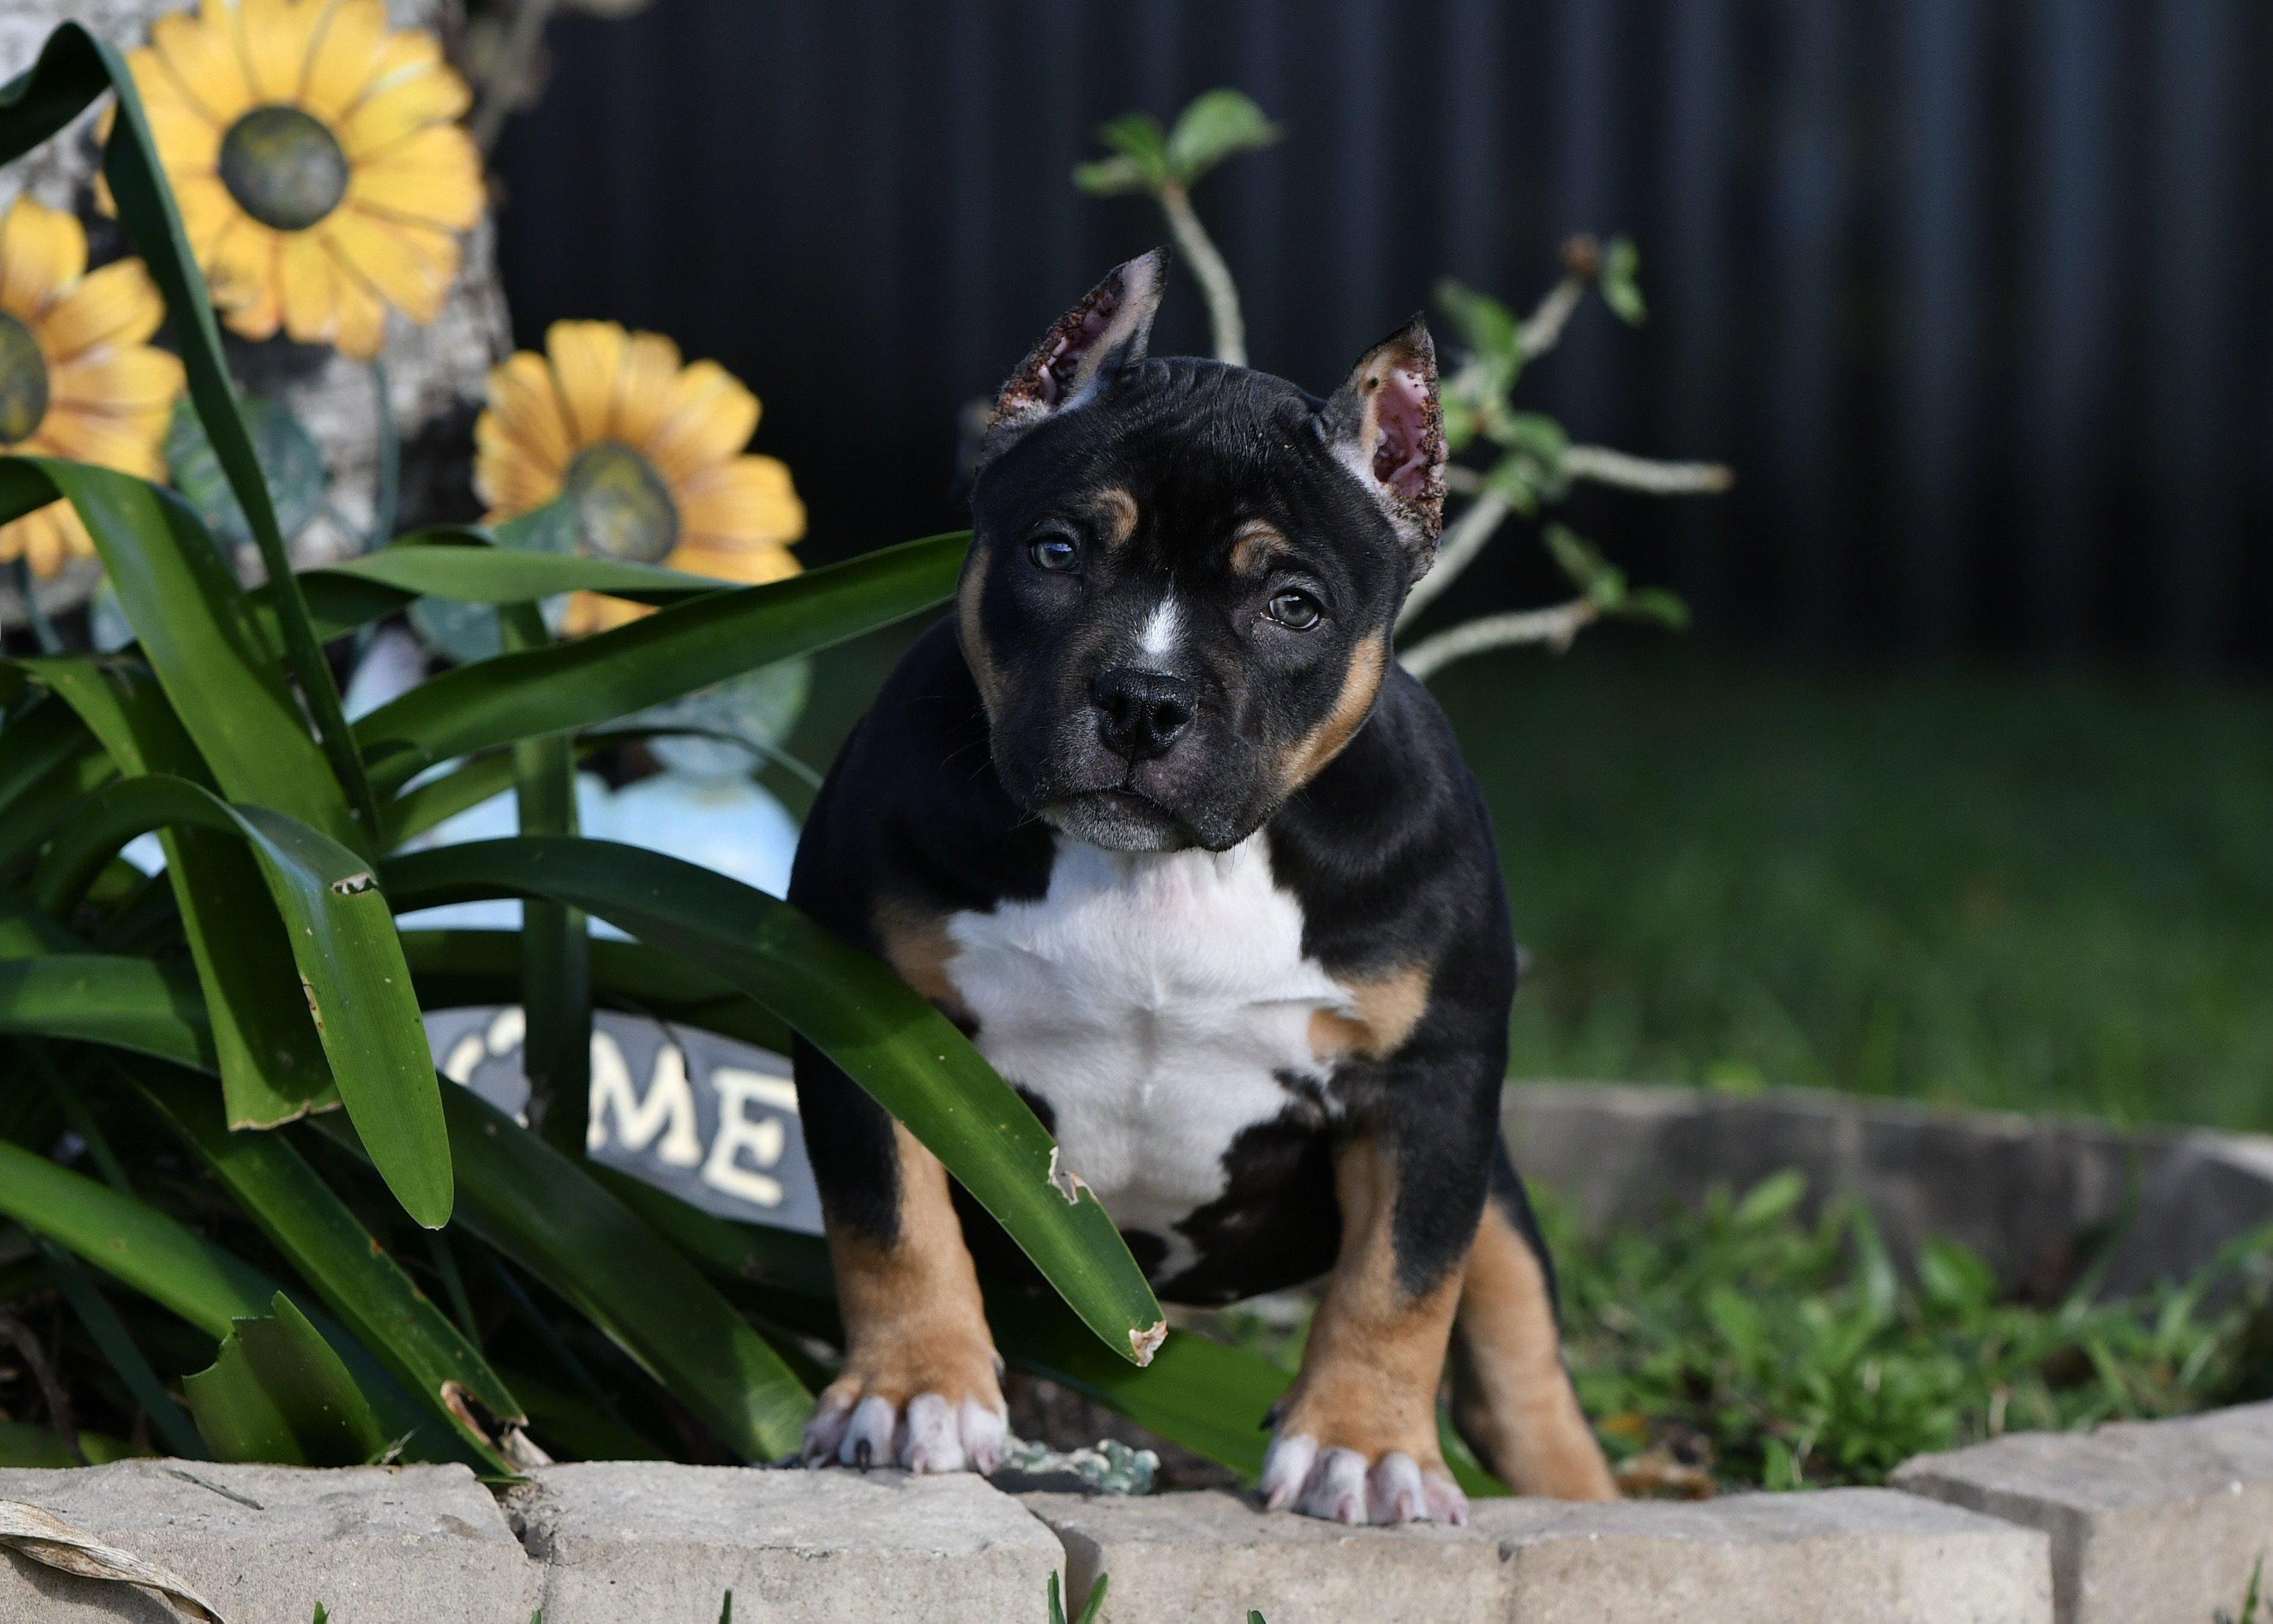 Black Tri Color, American bully puppy, Pocket Bully Breeder, Micro Bully Breeder, Best Kennels & Breeders, Daxline, Venomline, Louis V Line Bullys, Muscletone Bullies